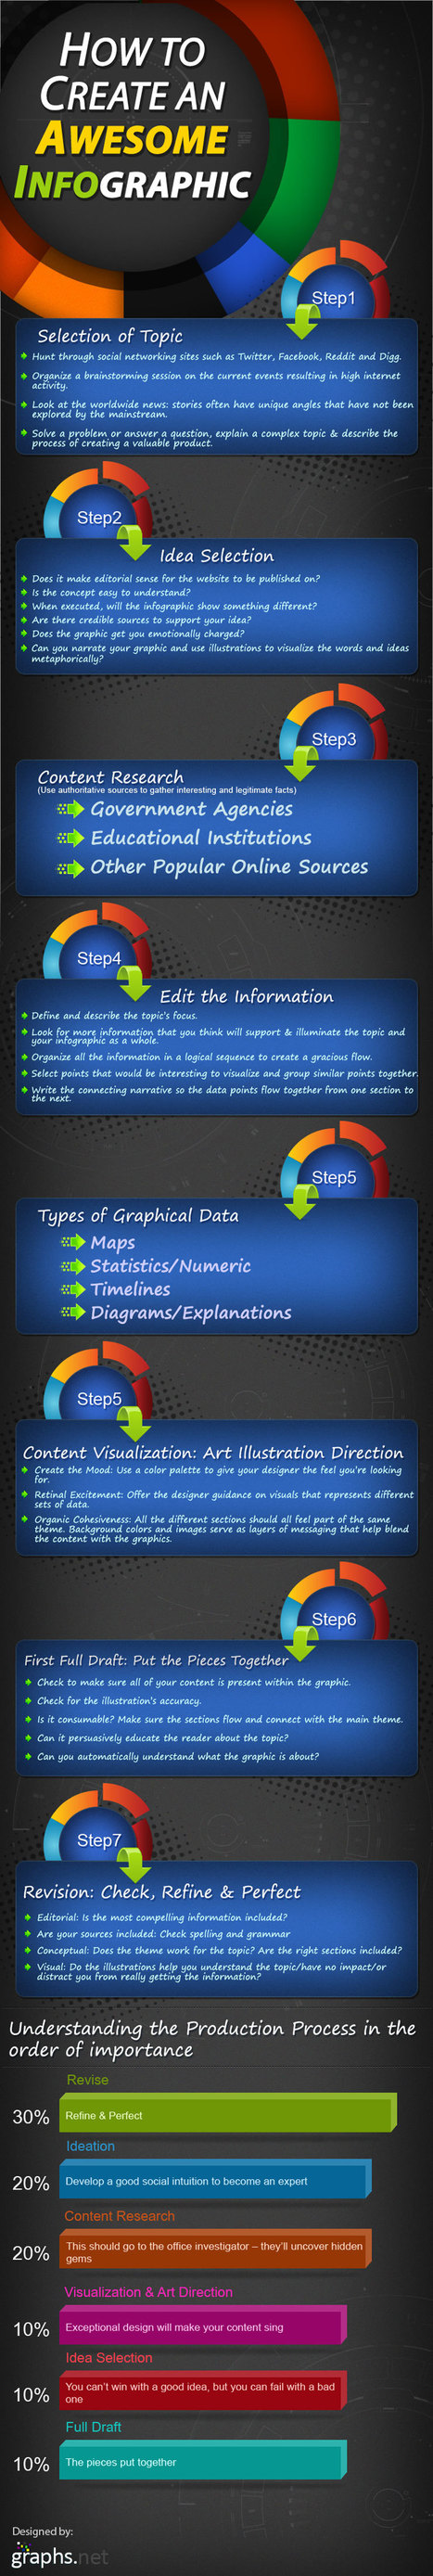 How to create awesome infographics – infographic | WordPress Google SEO and Social Media | Scoop.it